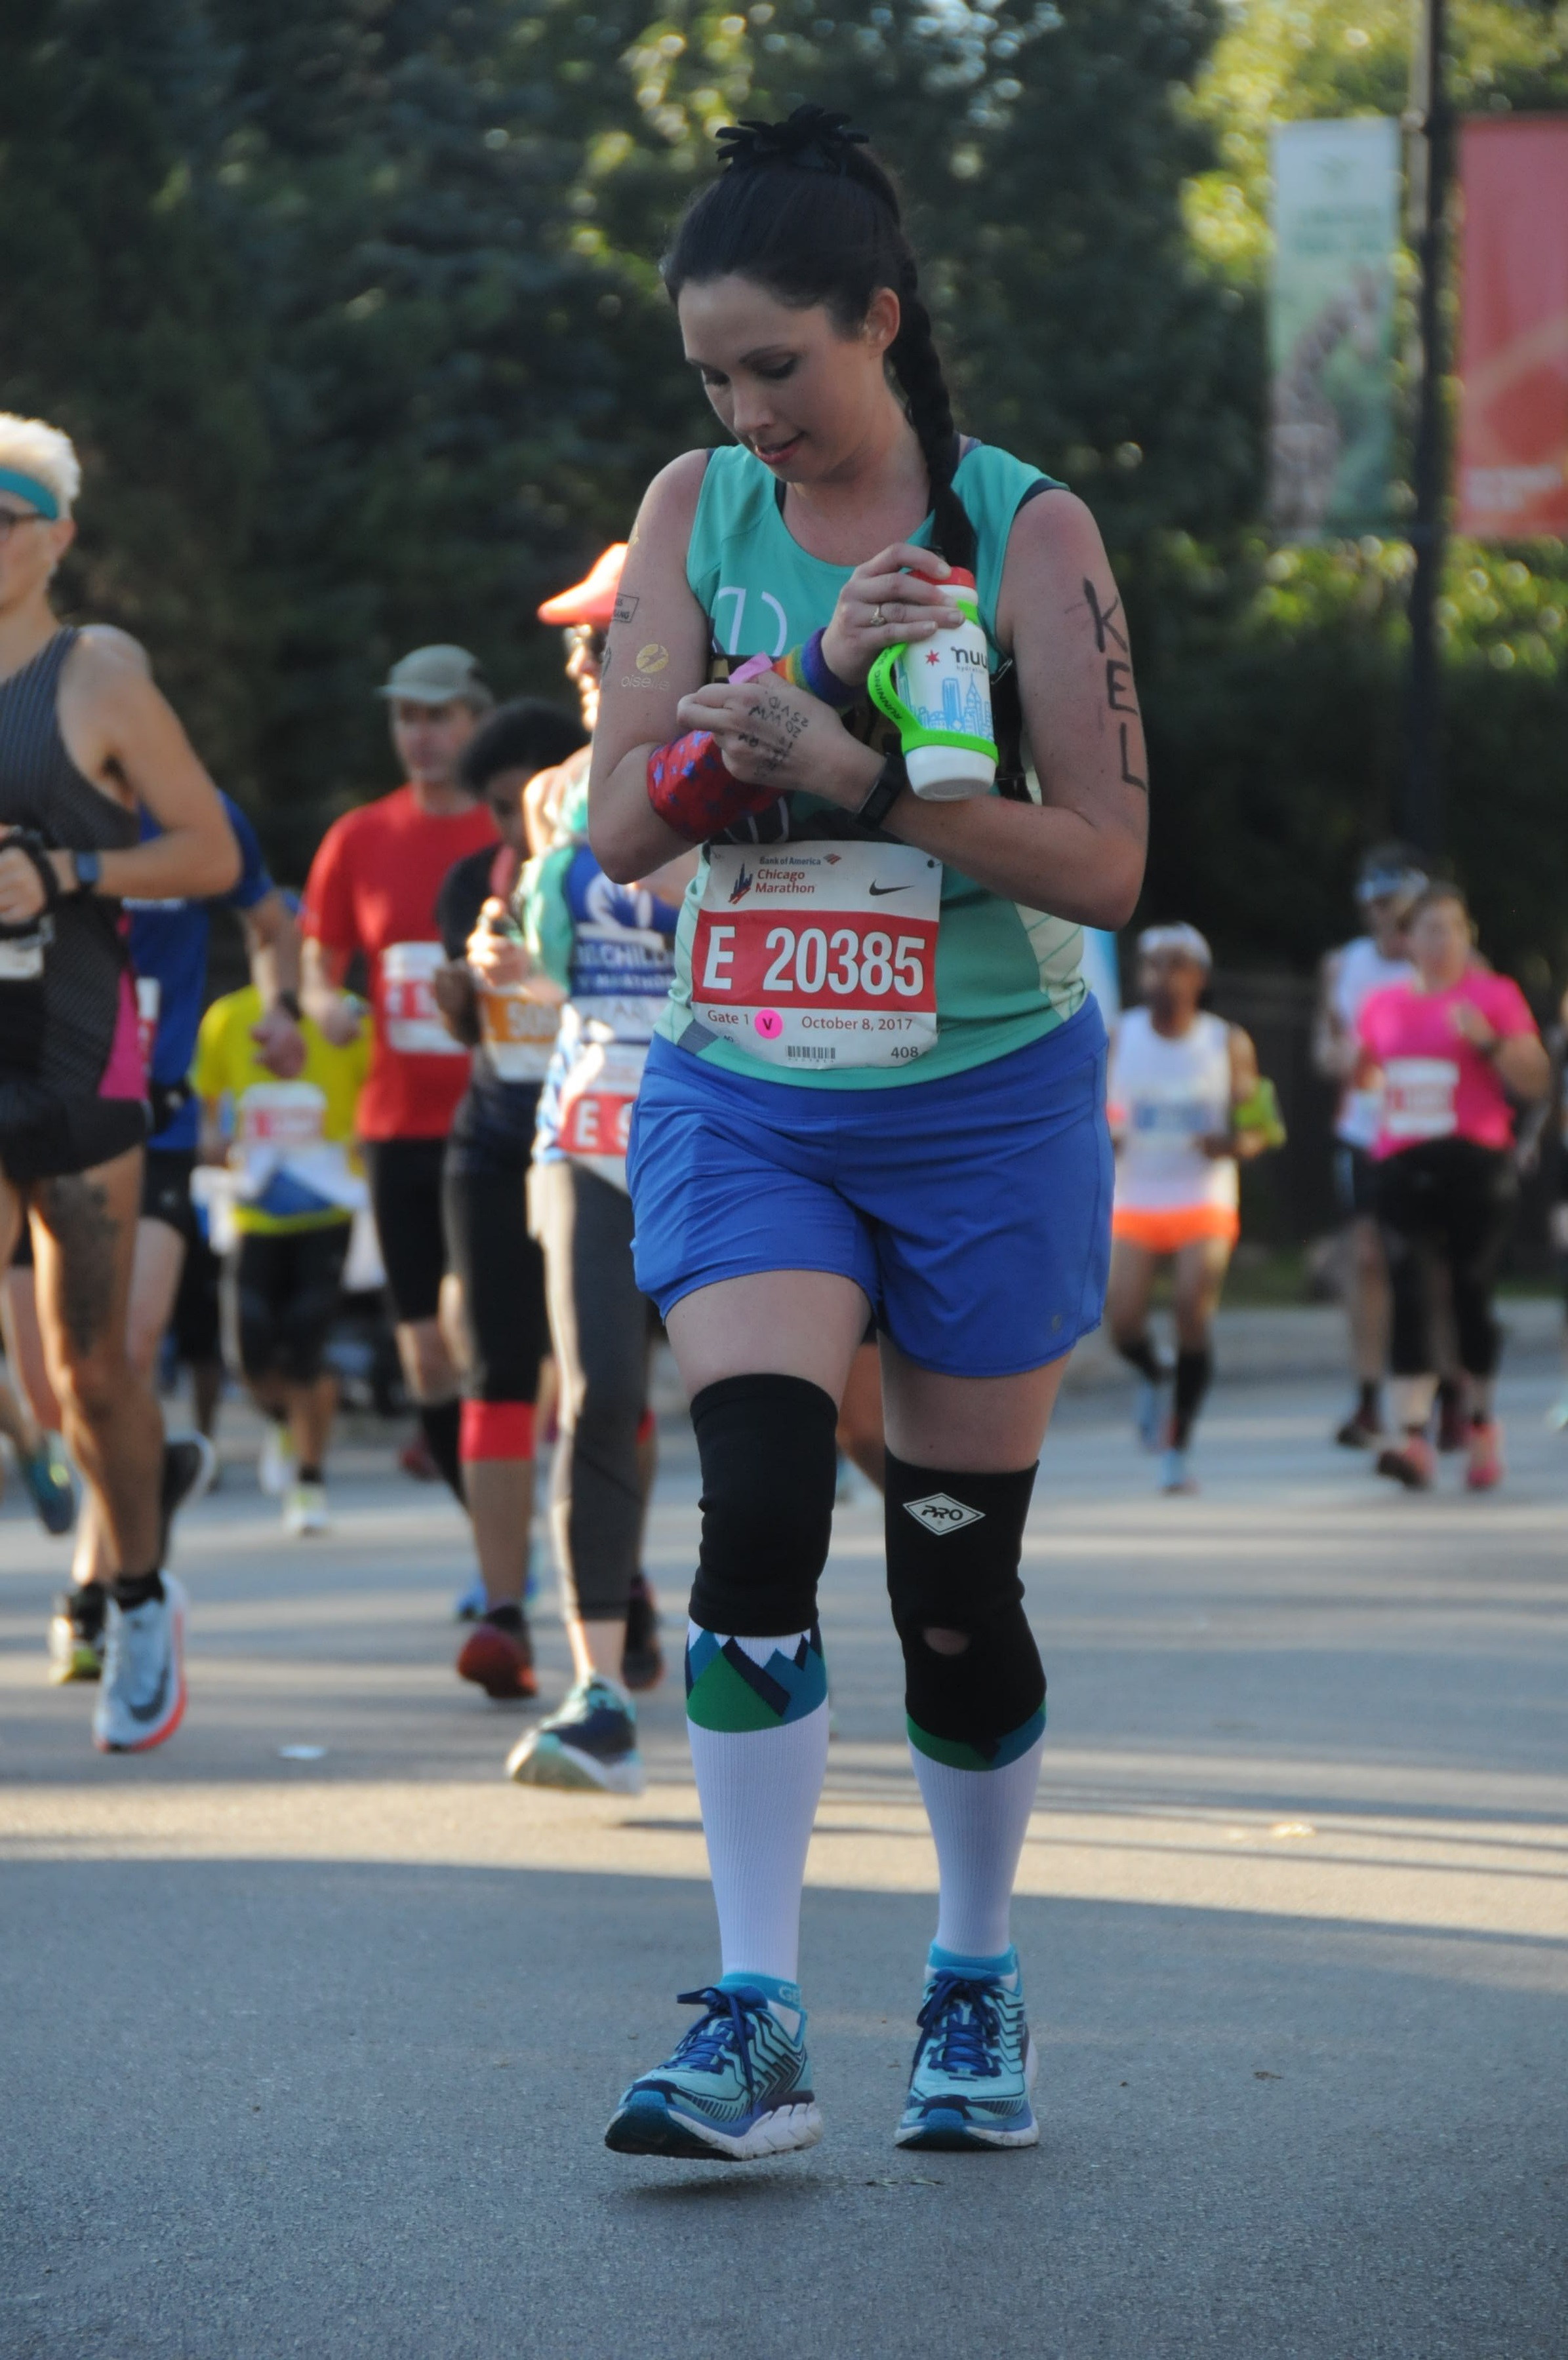 Check out the intensity with which I am running this marathon.... - Did I mention you can fit A LOT of snacks in this?